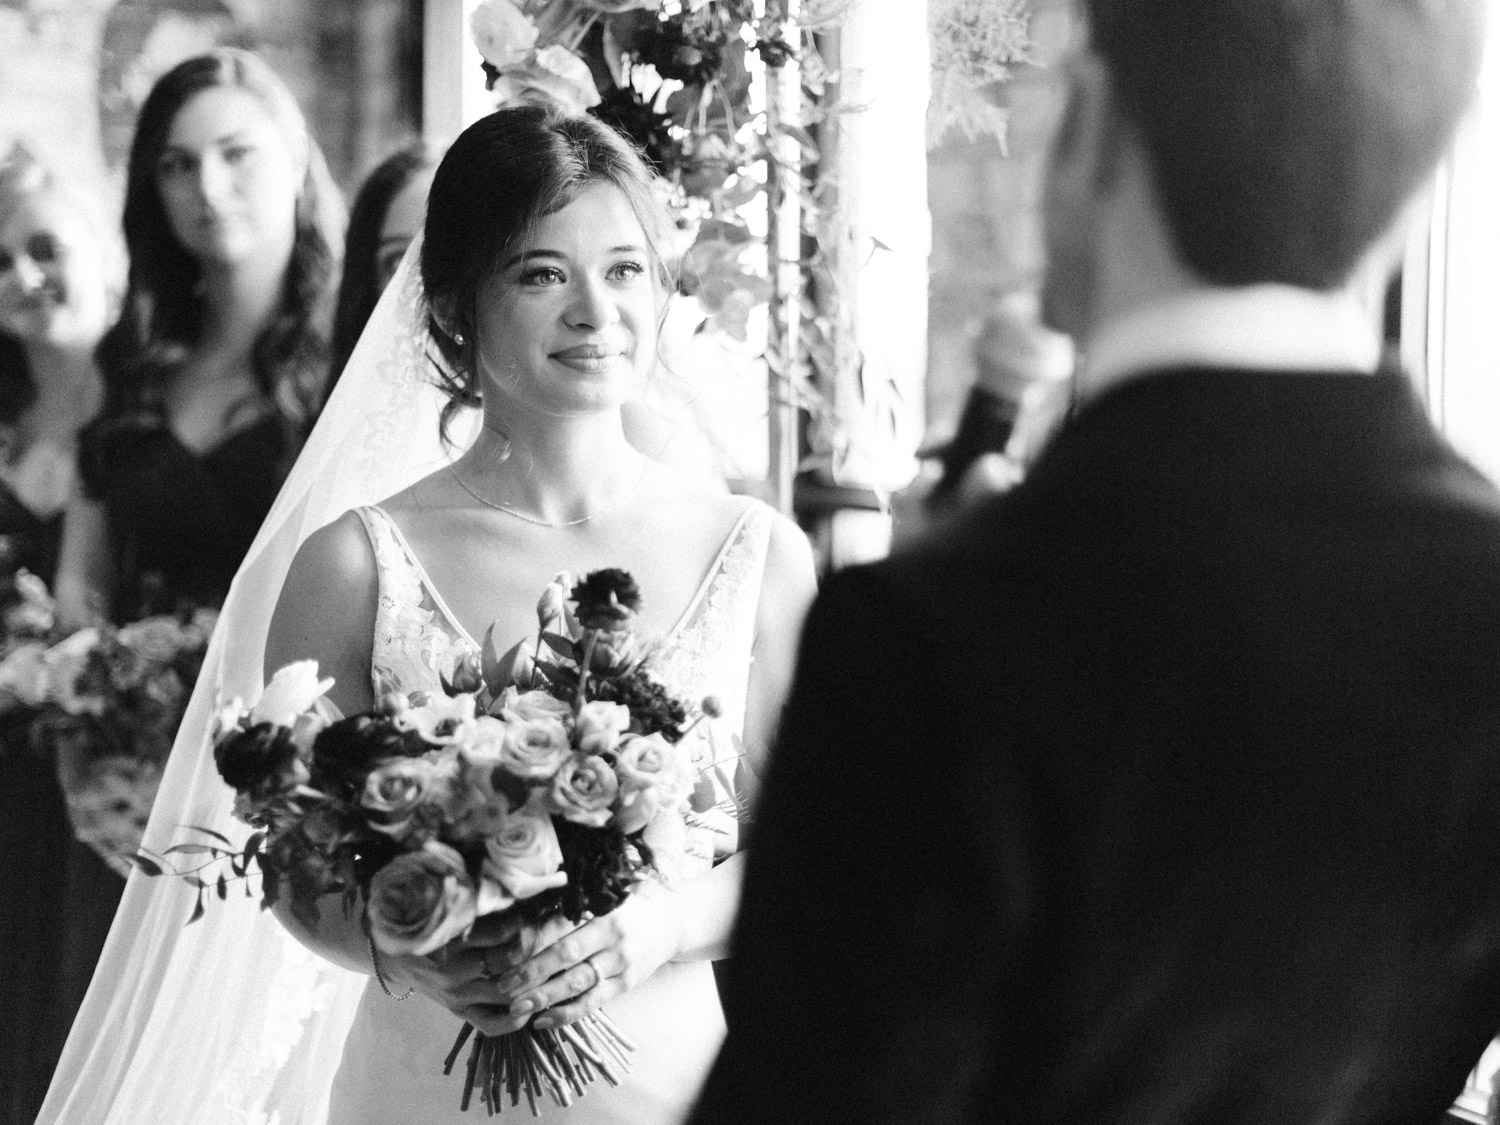 Candid, emotional photograph of indoor winter wedding ceremony at The Burroughes venue in Toronto.  Captured by Toronto wedding photographer Corynn Fowler Photography.